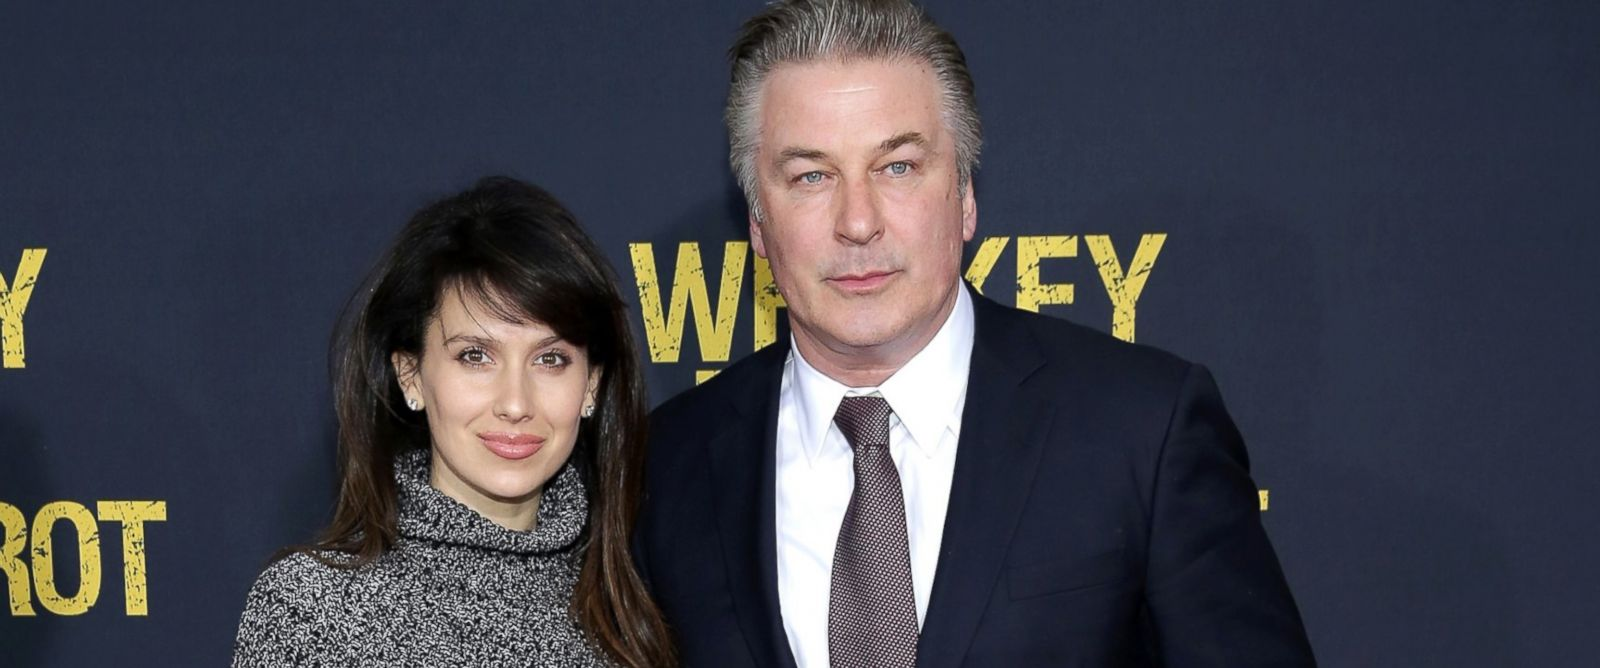 """PHOTO: Hilaria Thomas Baldwin and Alec Baldwin attend the World Premiere of the Paramount Pictures title """"Whiskey Tango Foxtrot"""", March 1, 2016, in New York City."""